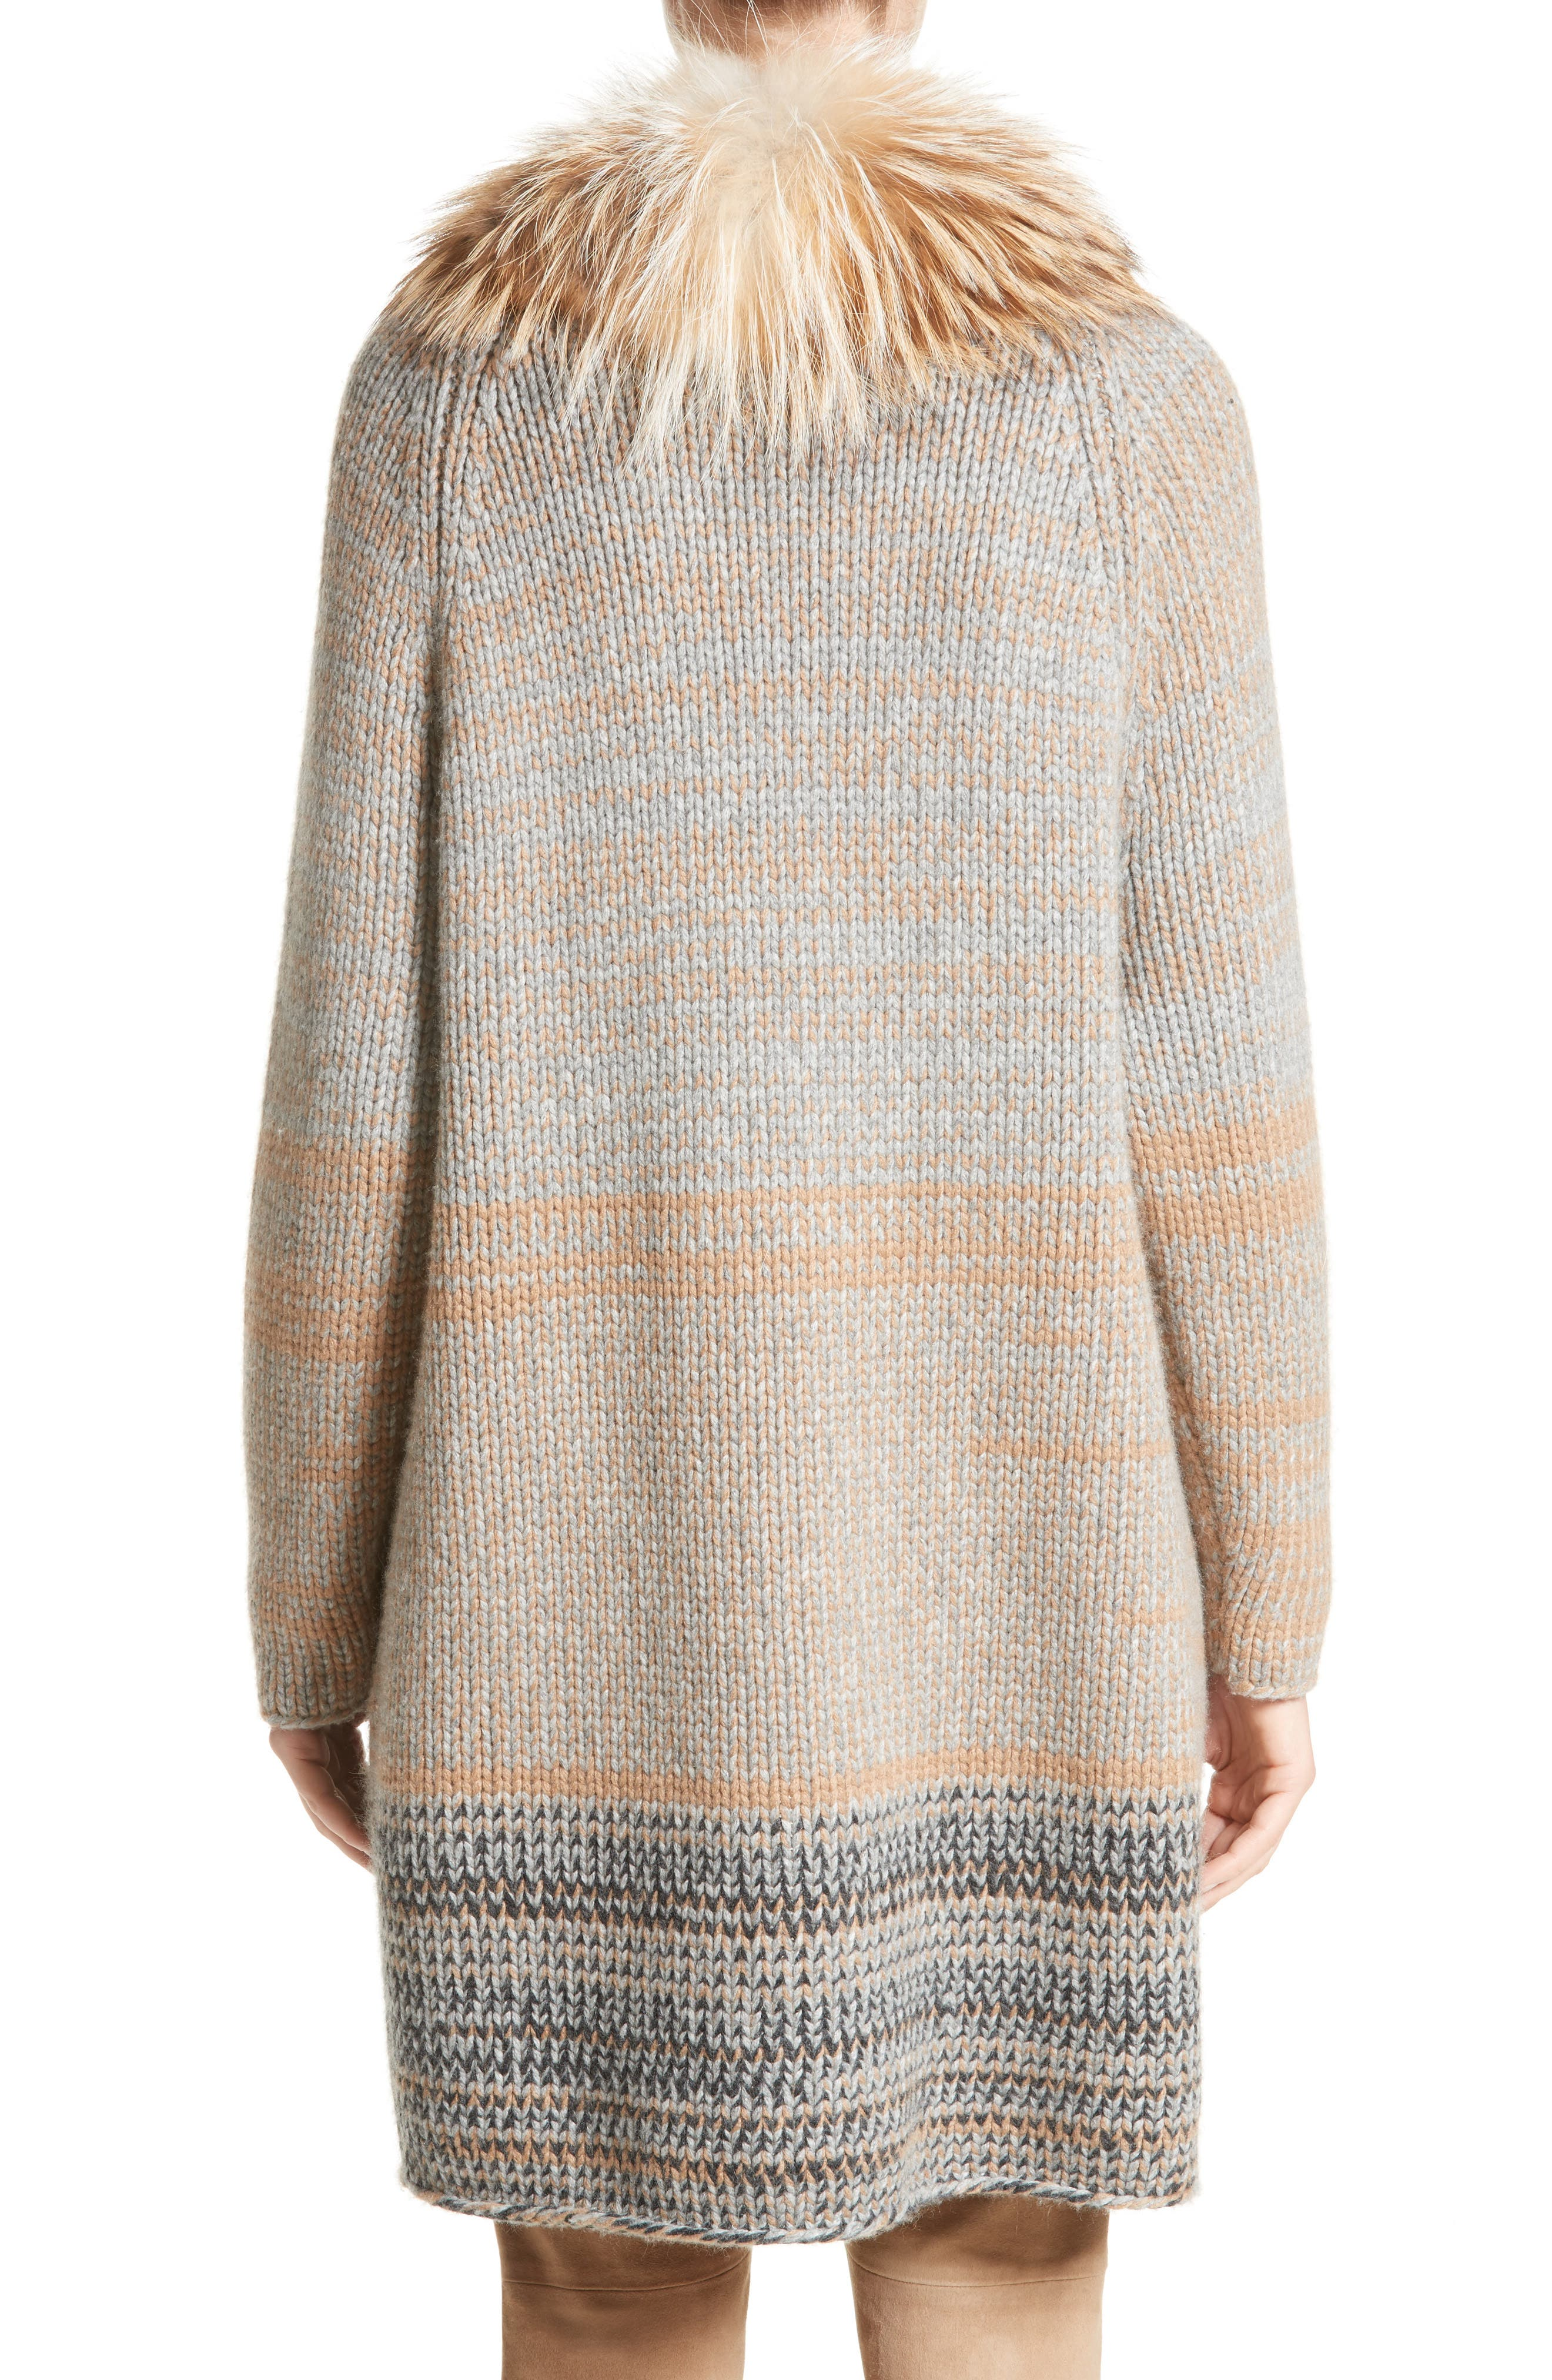 Cashmere Cardigan with Removable Genuine Fox Fur Collar,                             Alternate thumbnail 3, color,                             Camel / Grey Multi